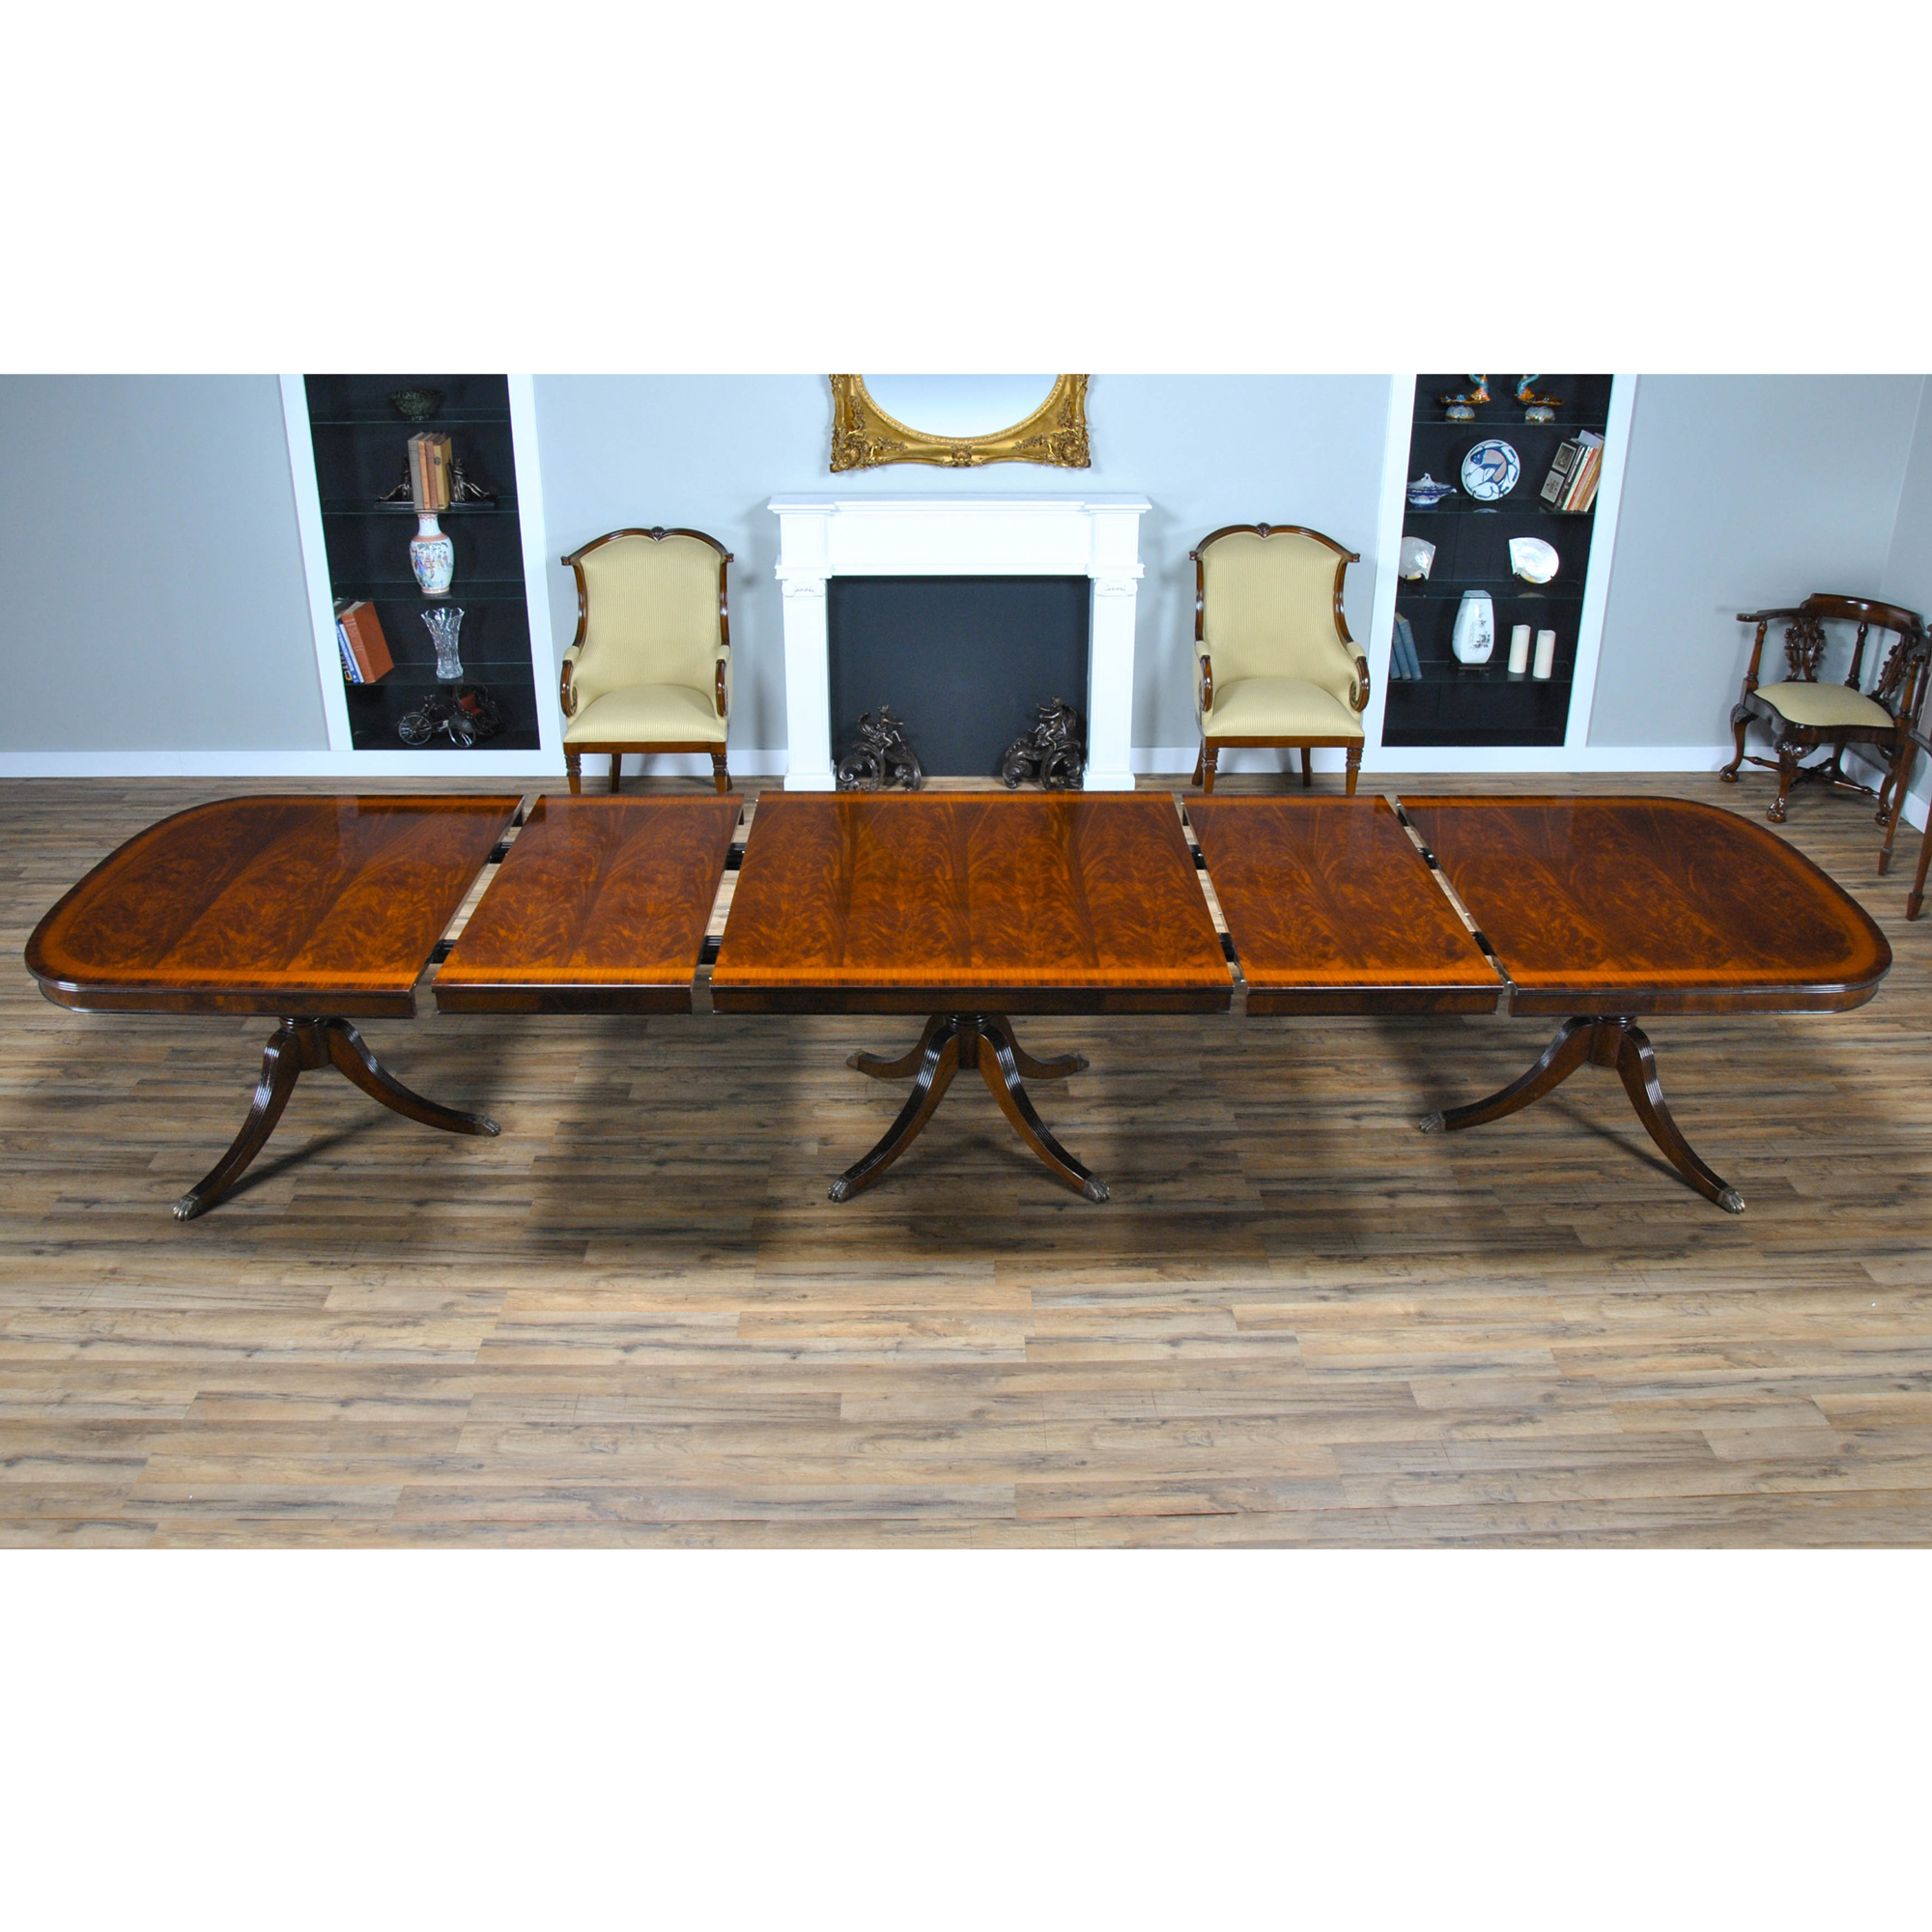 Foot Mahogany Dining Table Three Pedestal Dining Table - 15 foot conference table